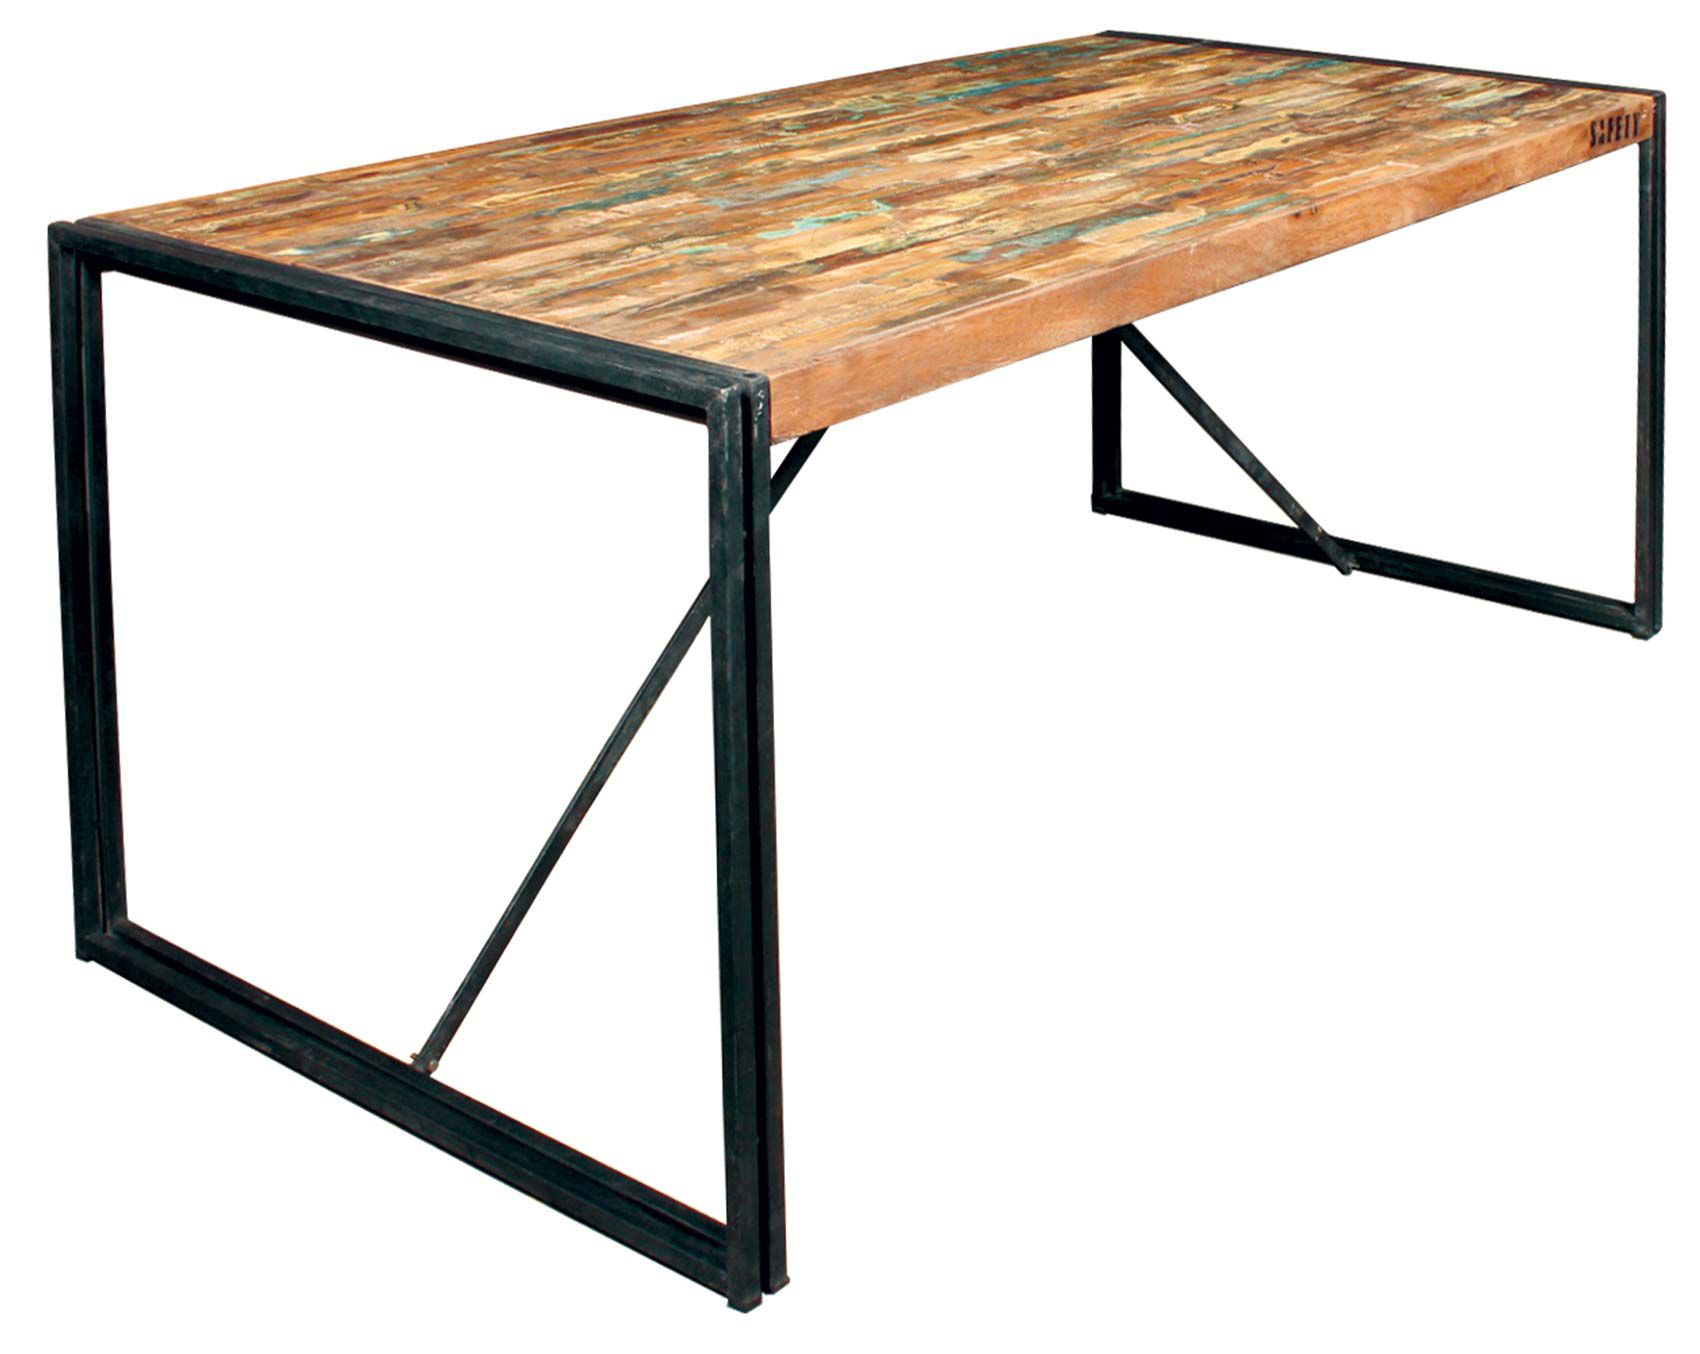 Every Home Deserves A Beautiful Dining Table On Which To Enjoy Family Meal Times And Industrial TablesDining BenchIndustrial